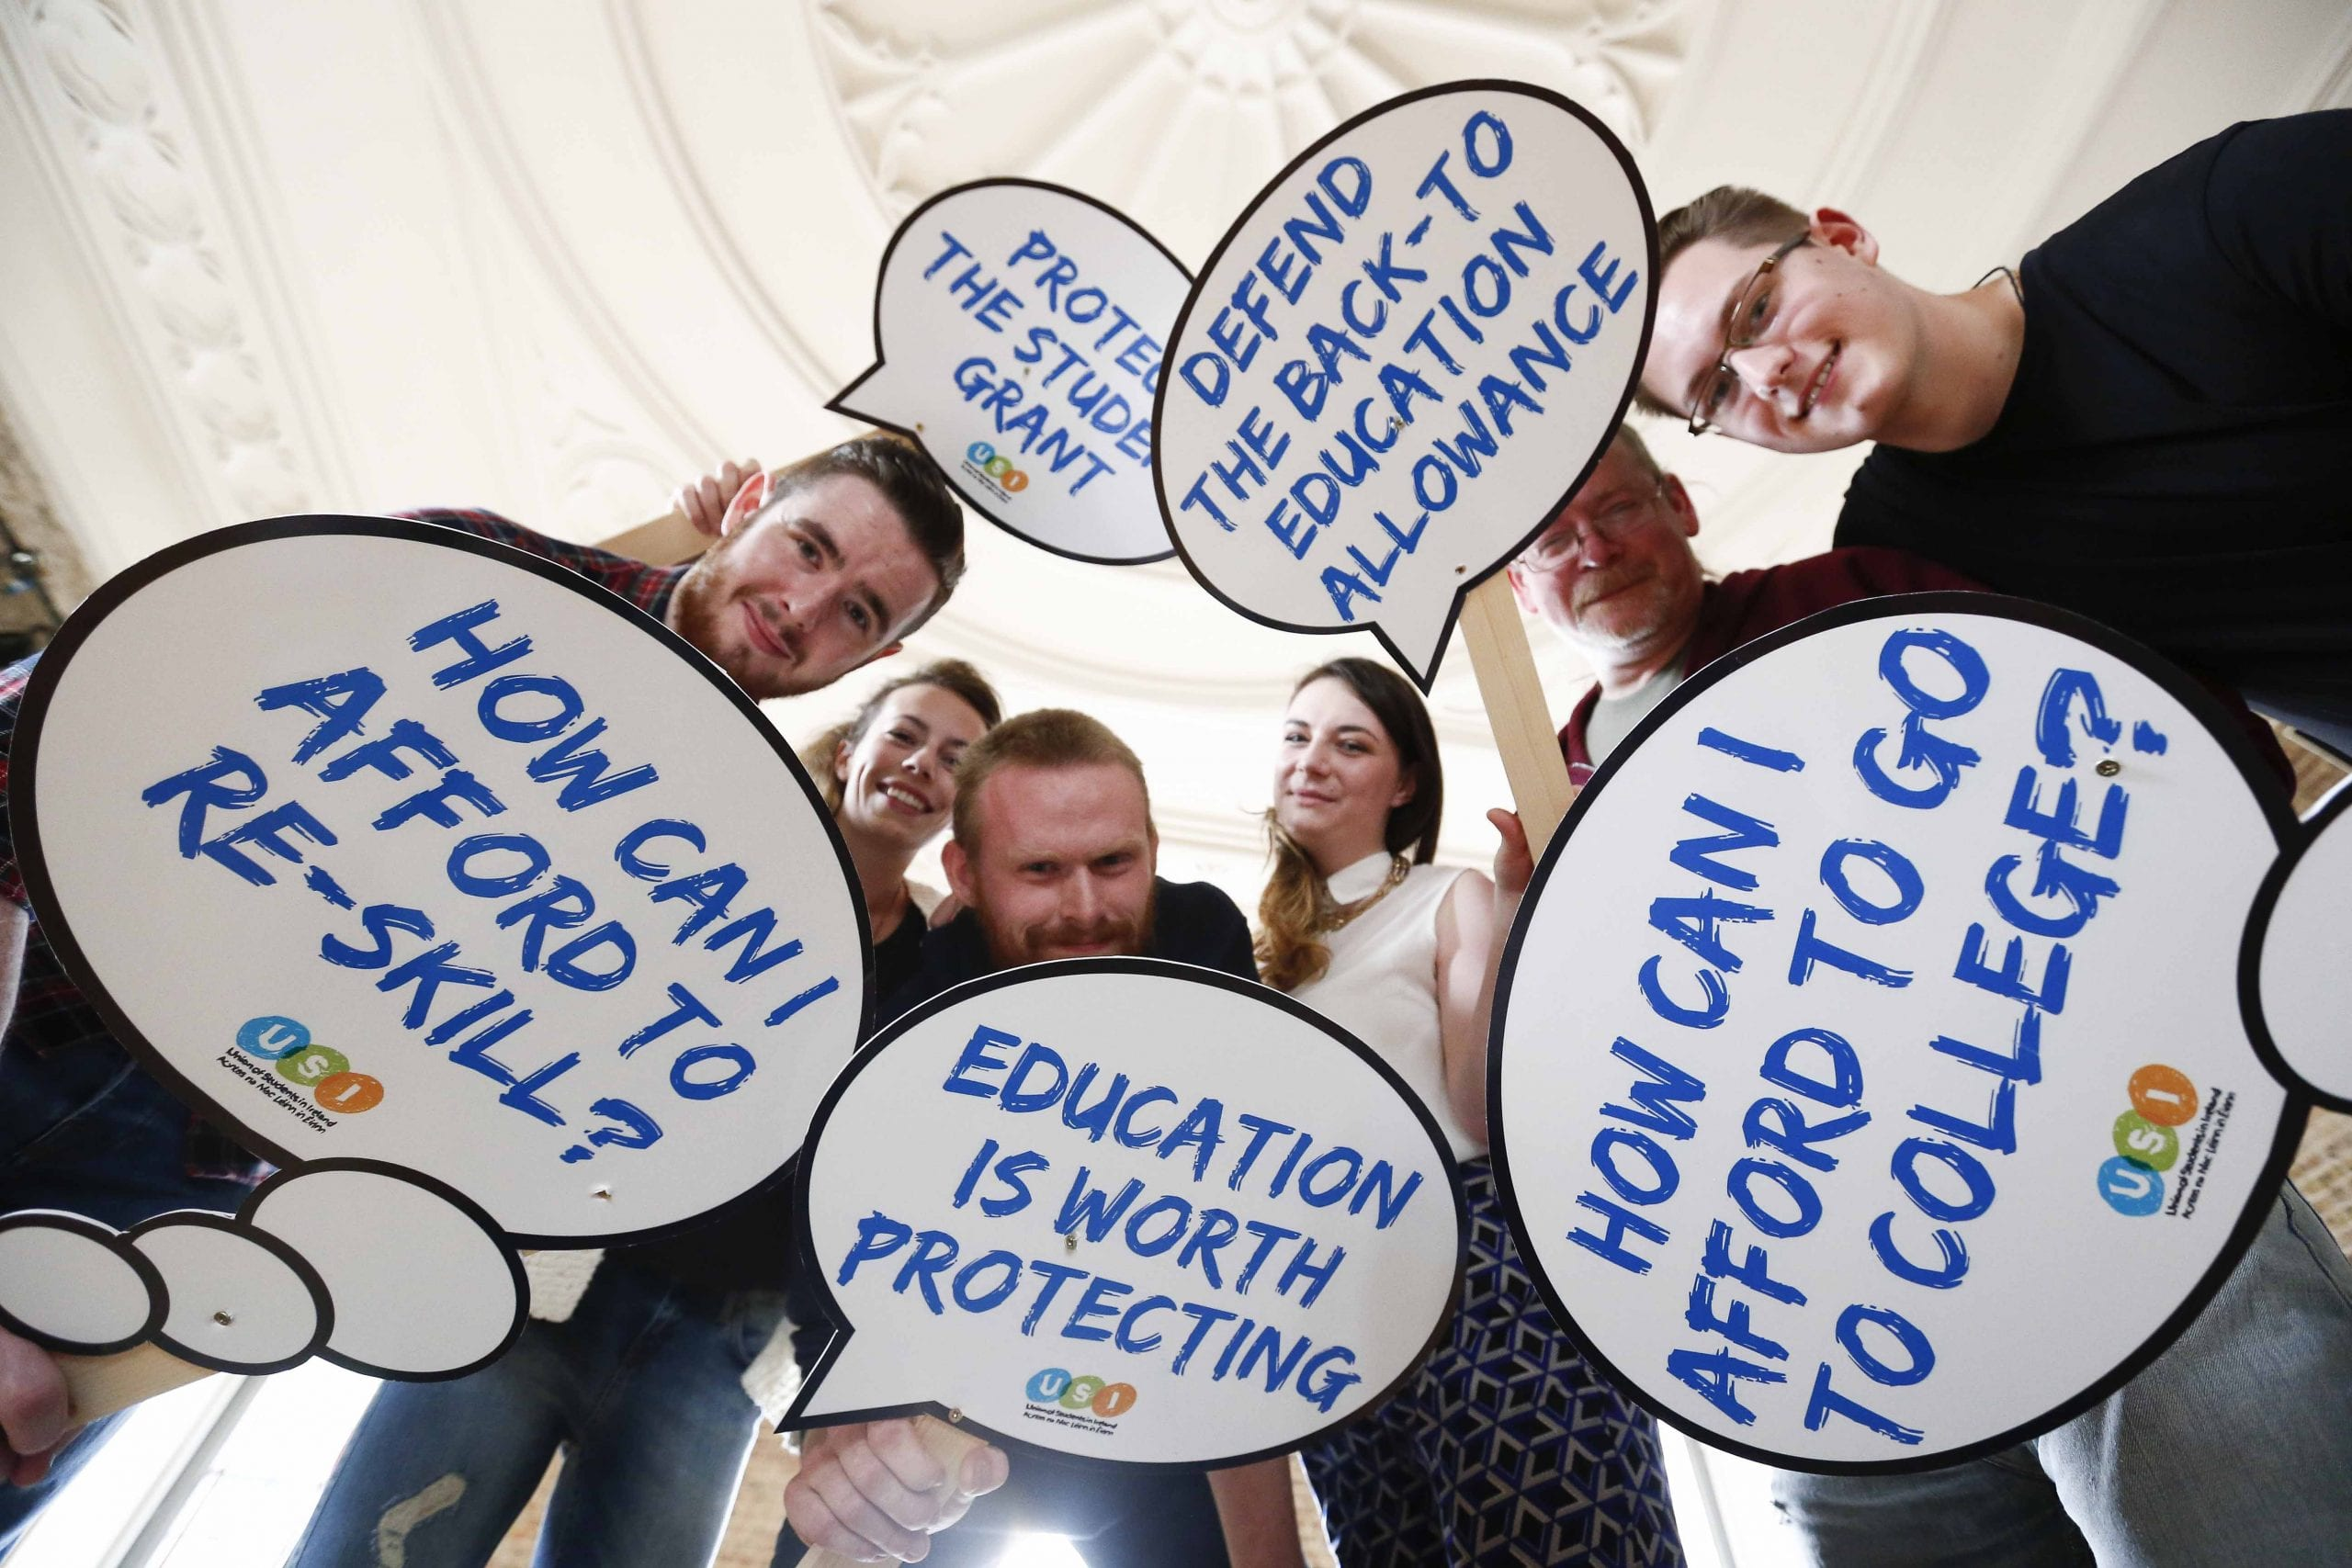 Union of Students in Ireland to hold seminar on publicly funded higher education